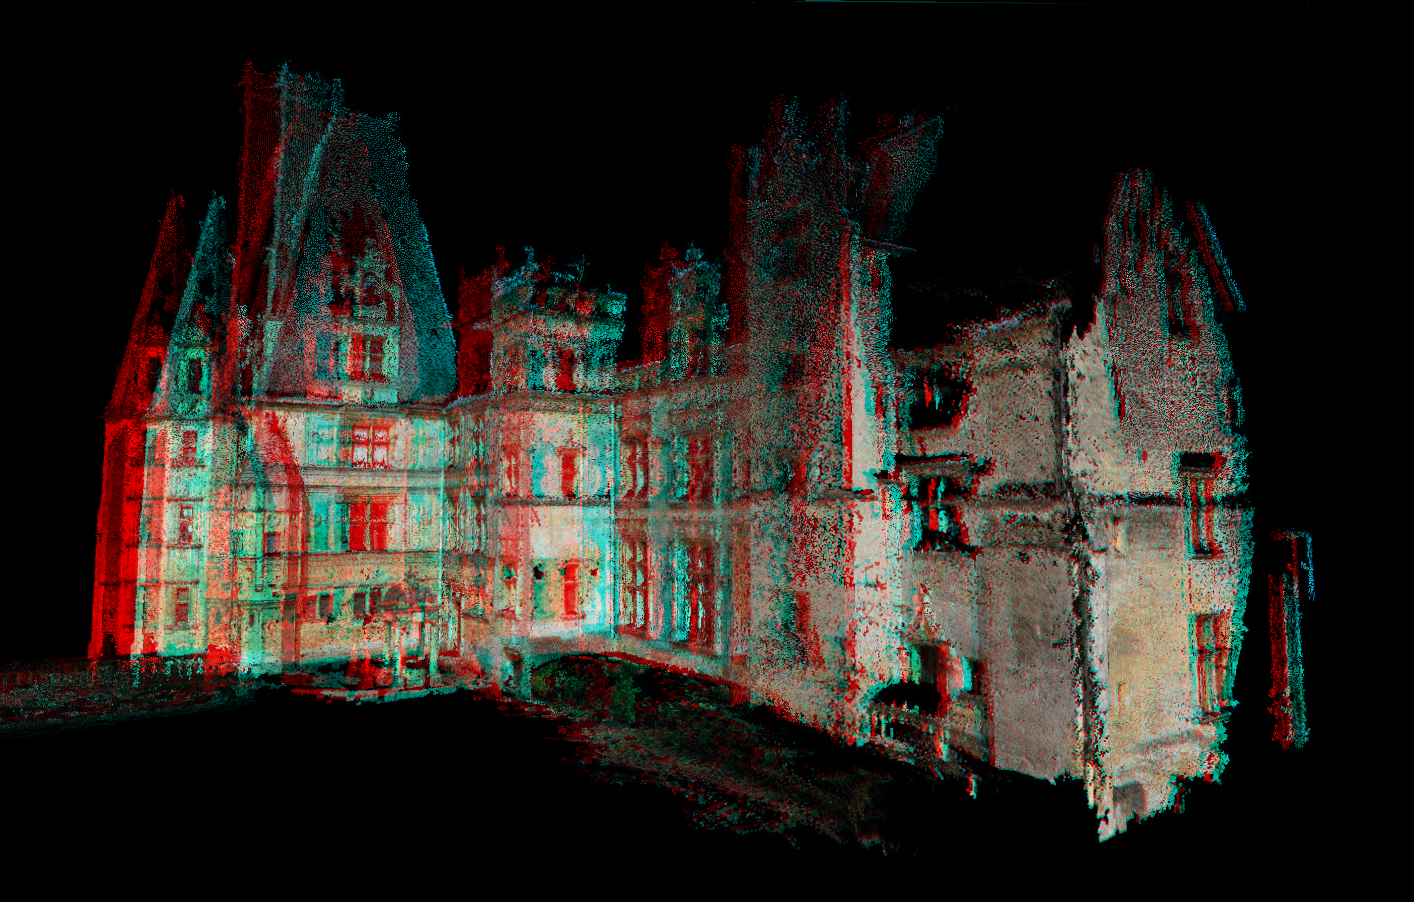 Chateau-Fontaine-Henry-Anaglyphe3